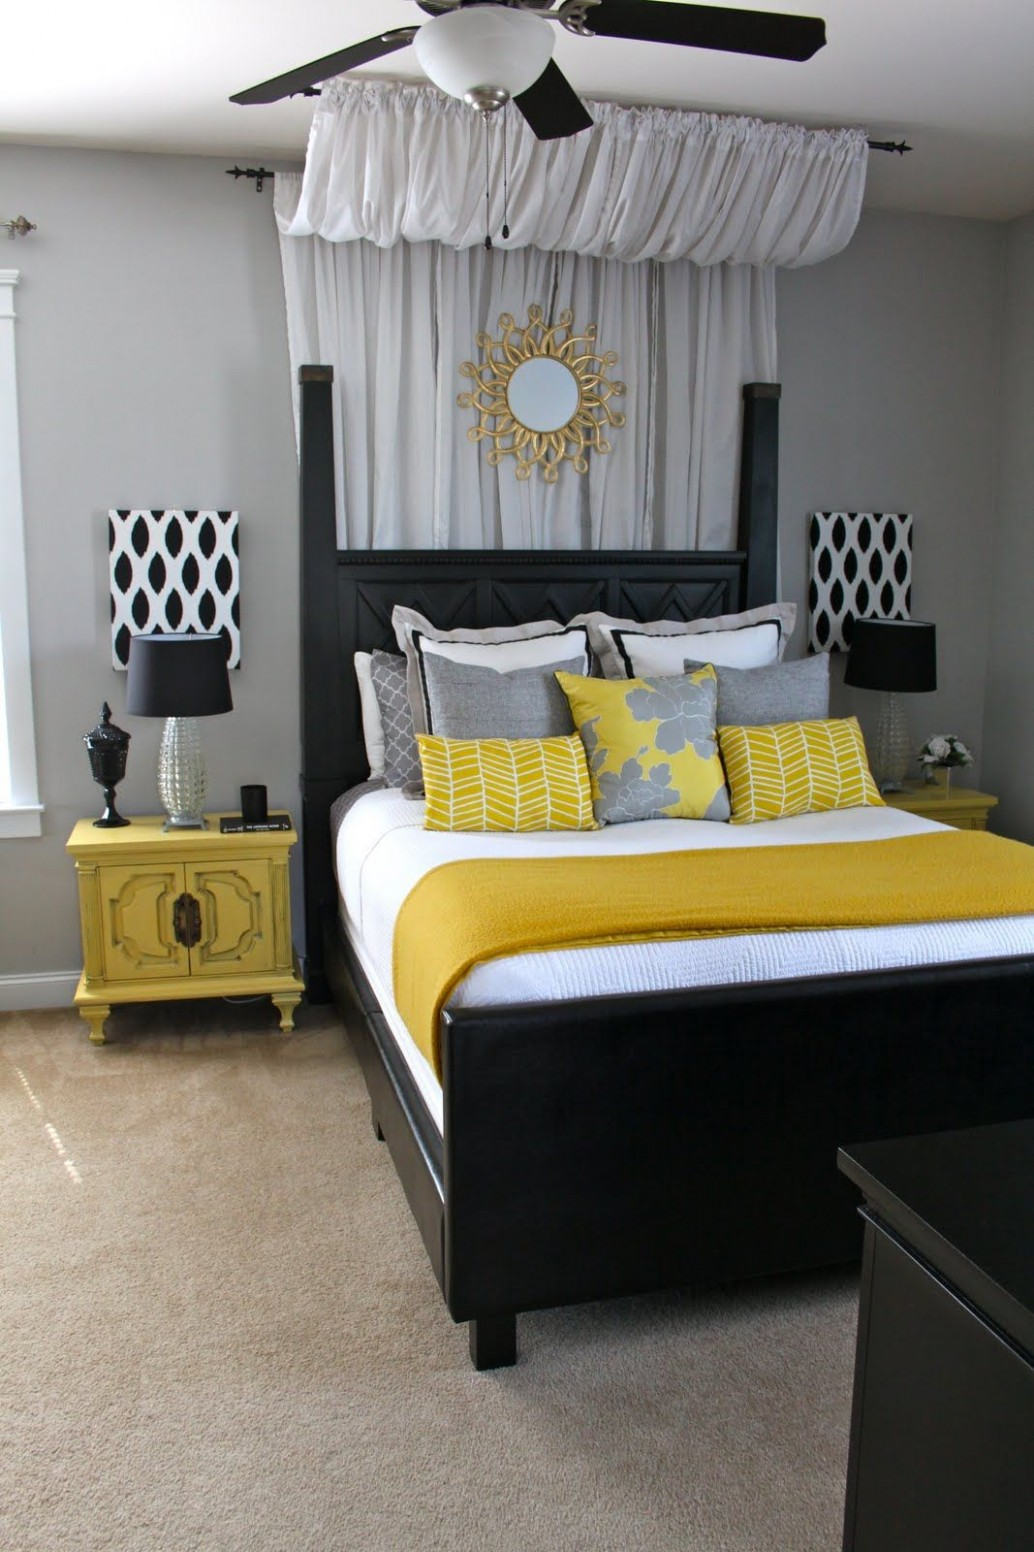 Dwellings By DeVore: The Master  Home bedroom, Elegant bedroom  - Bedroom Ideas Grey And Yellow